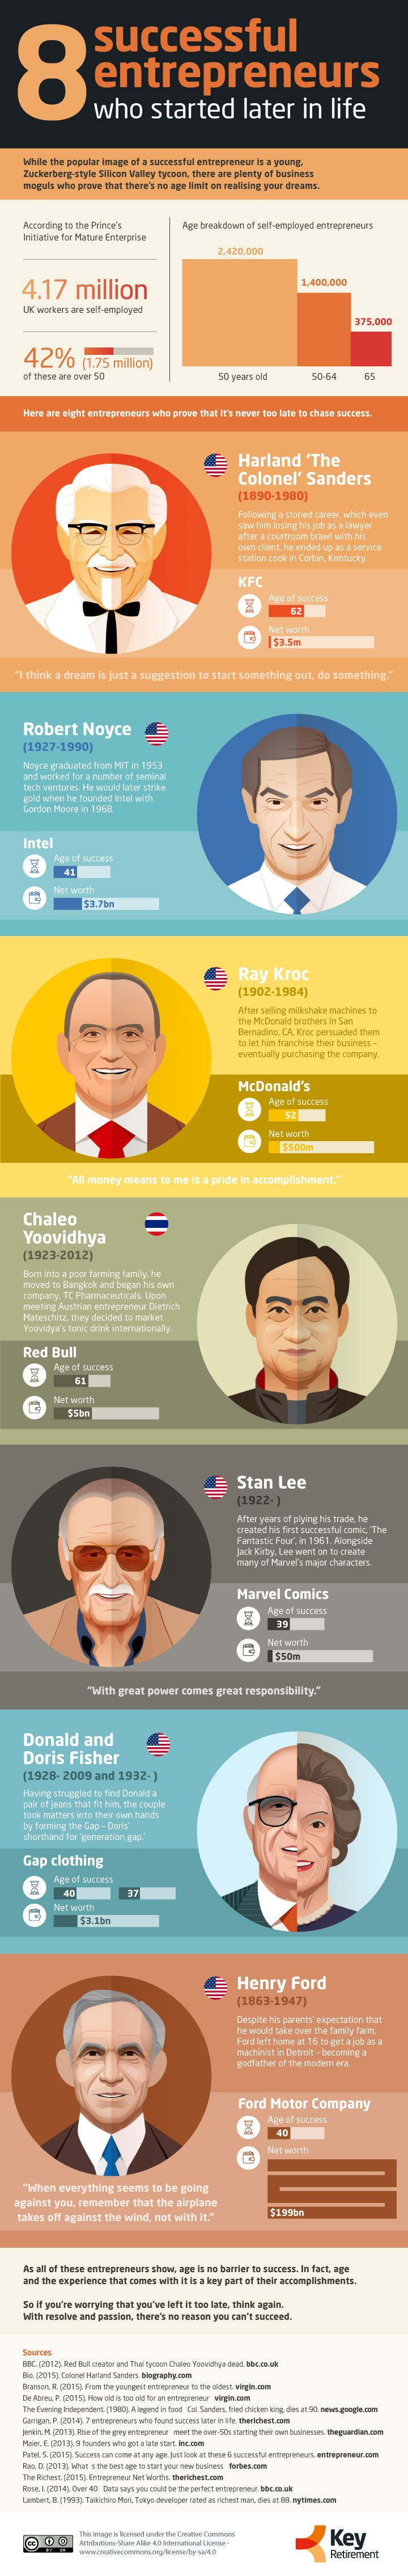 8 Successful Entrepreneurs Who Started Late in Life #infographic